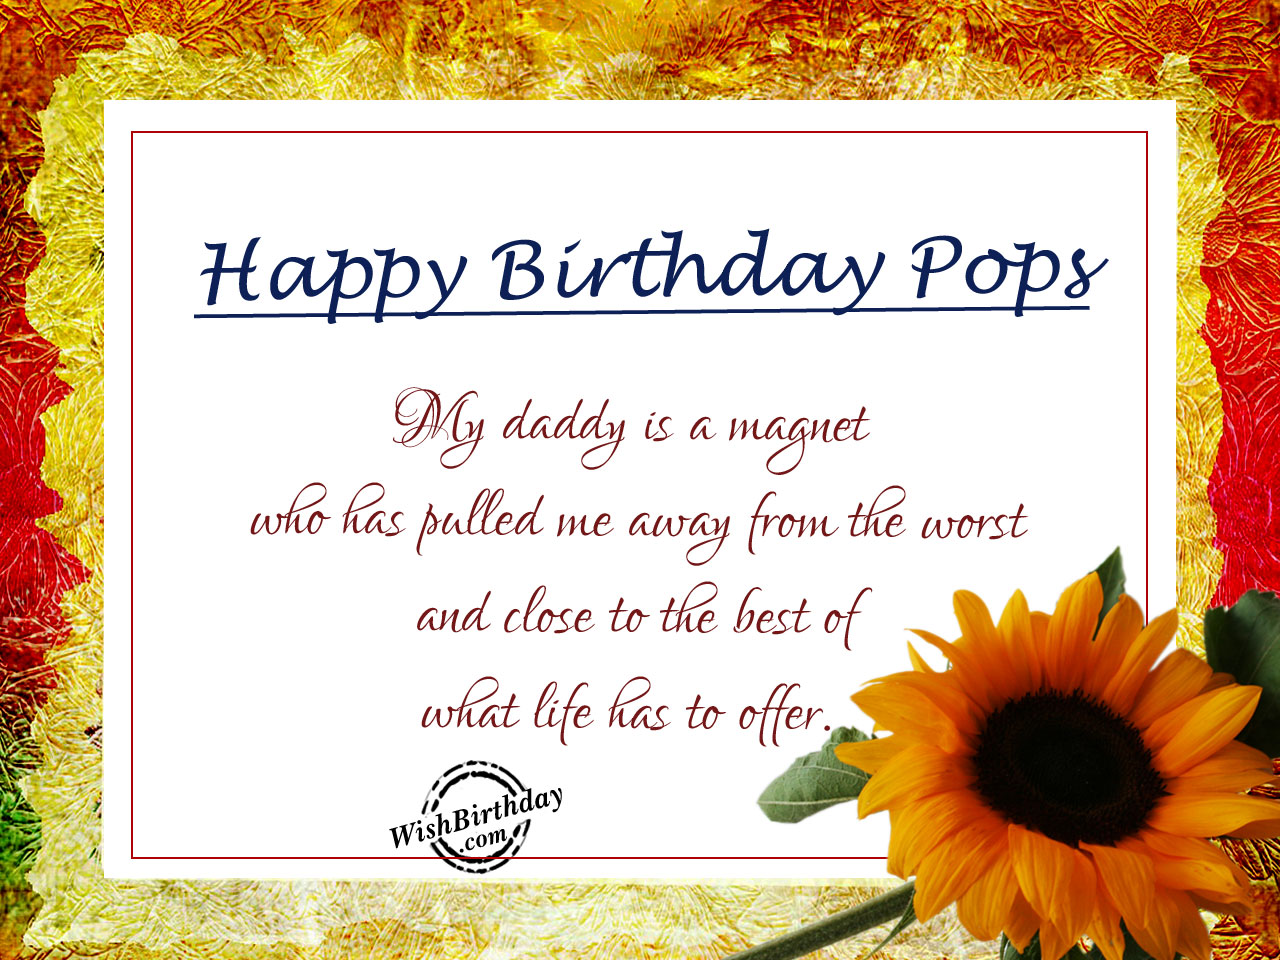 Birthday wishes for father birthday images pictures my daddy is magnethappy birthday wb7 m4hsunfo